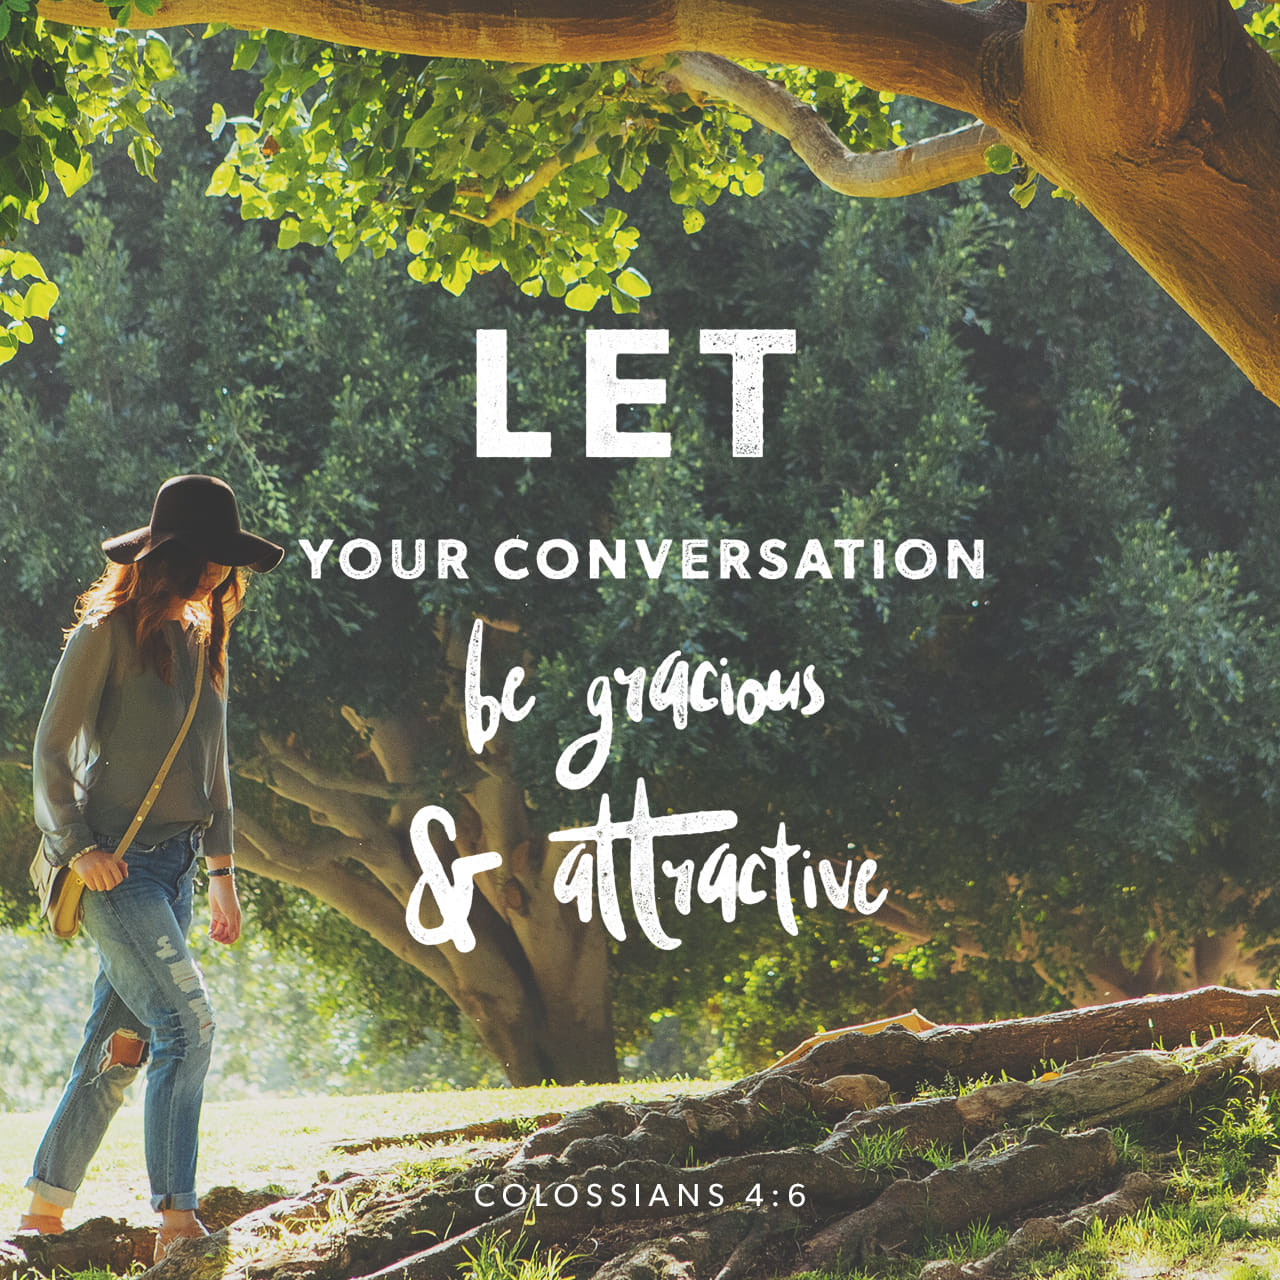 Colossians 4:5-6 Be wise in the way you act toward outsiders; make the most of every opportunity. Let your conversation be always full of grace, seasoned with salt, so that you may know how to answer everyone. | New International Version (NIV)